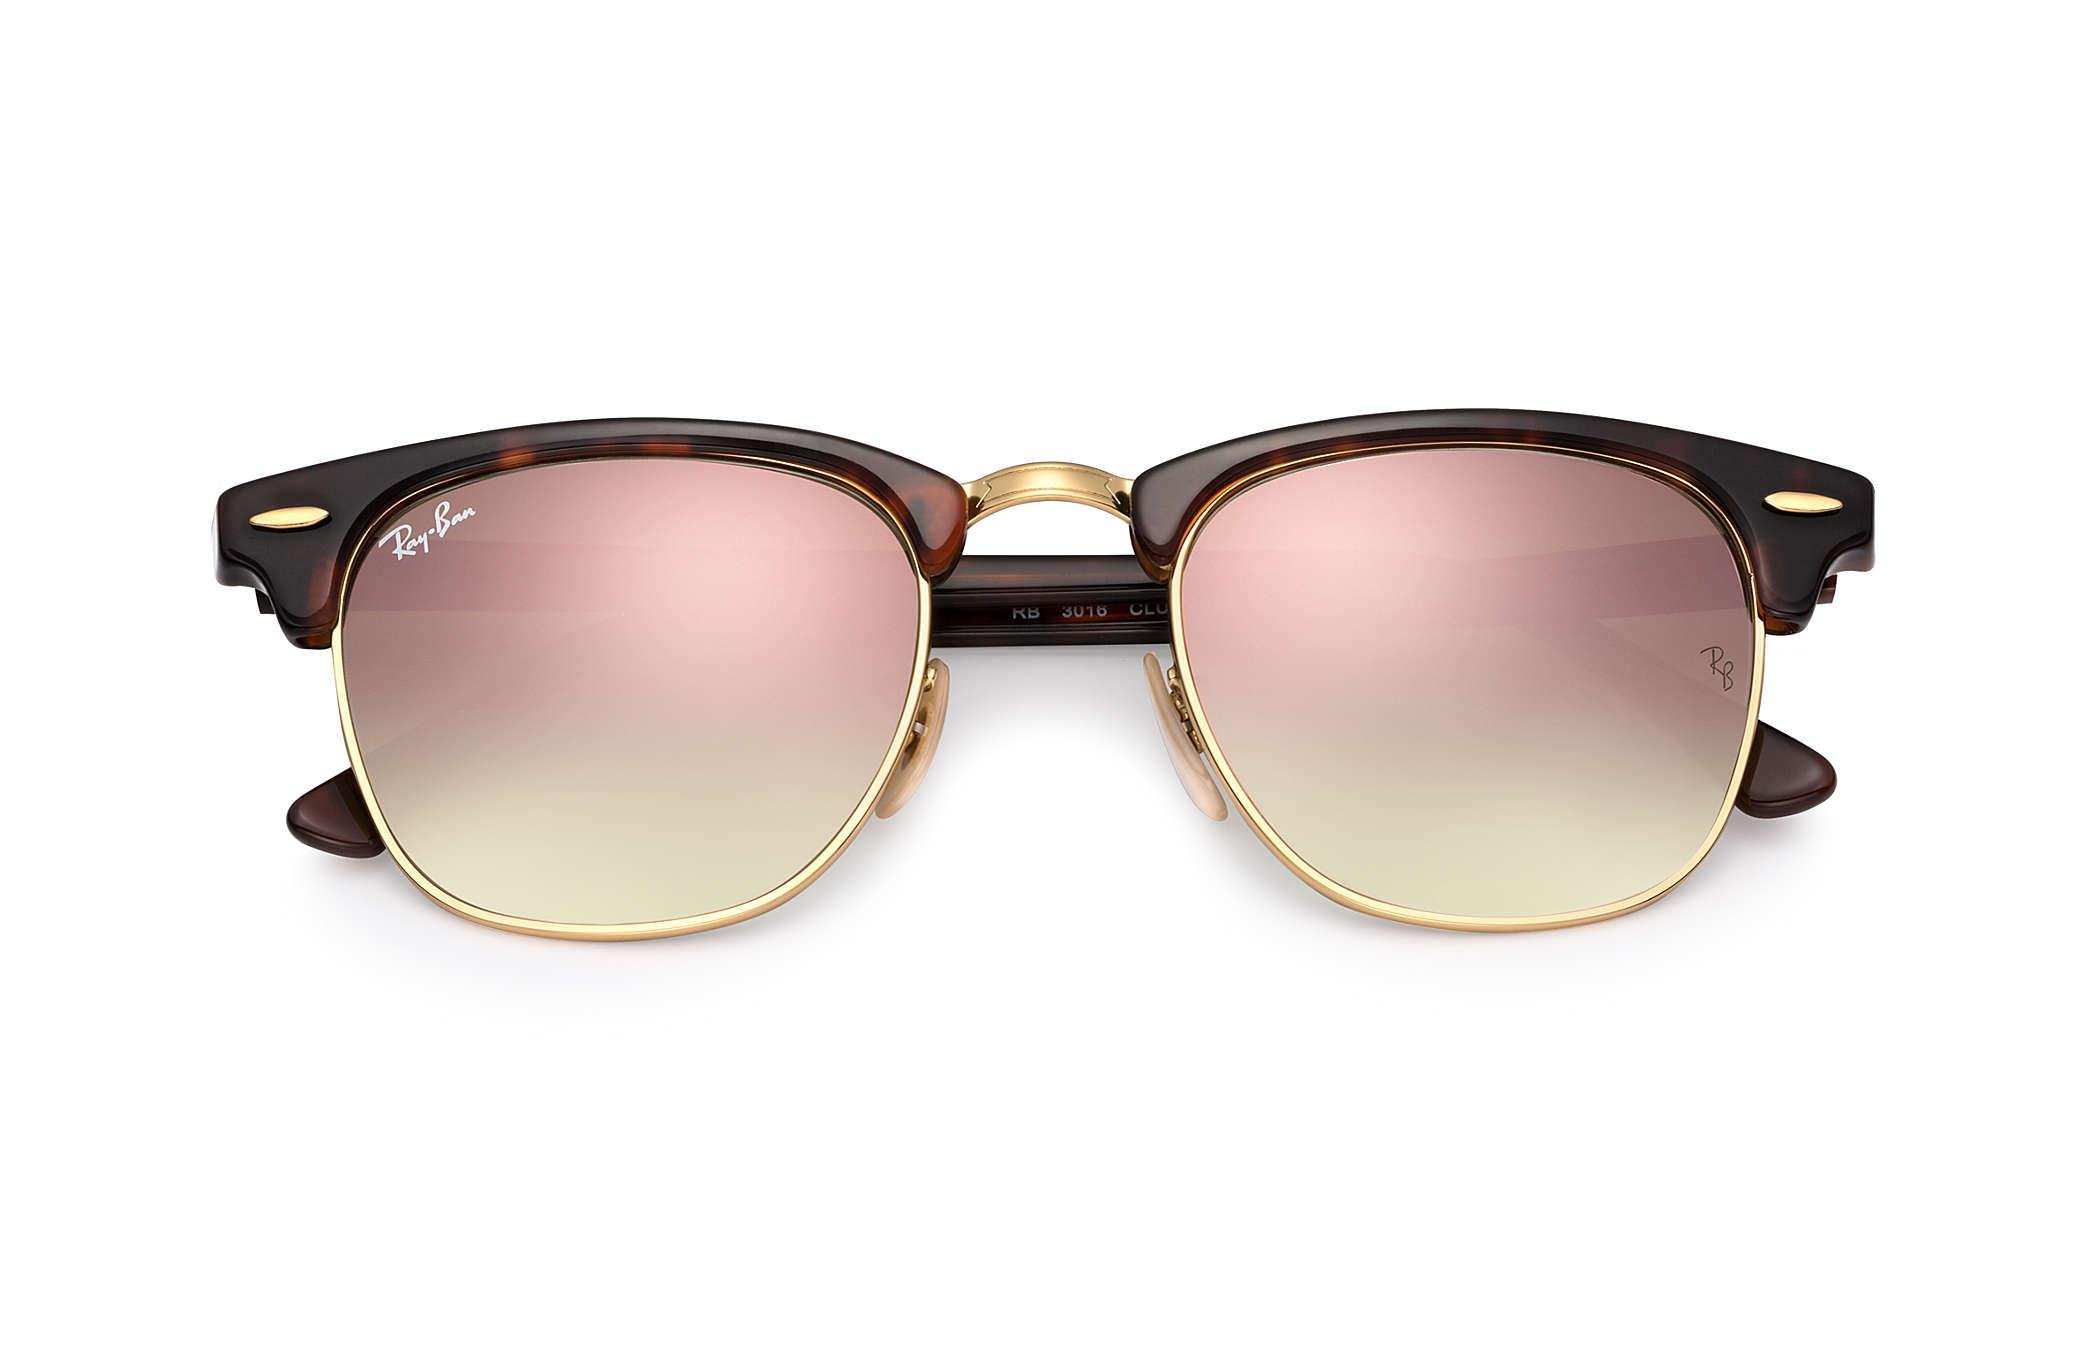 c58cadeb04 Ray-Ban - Multicolor Clubmaster Flash Lenses Gradient for Men - Lyst. View  fullscreen